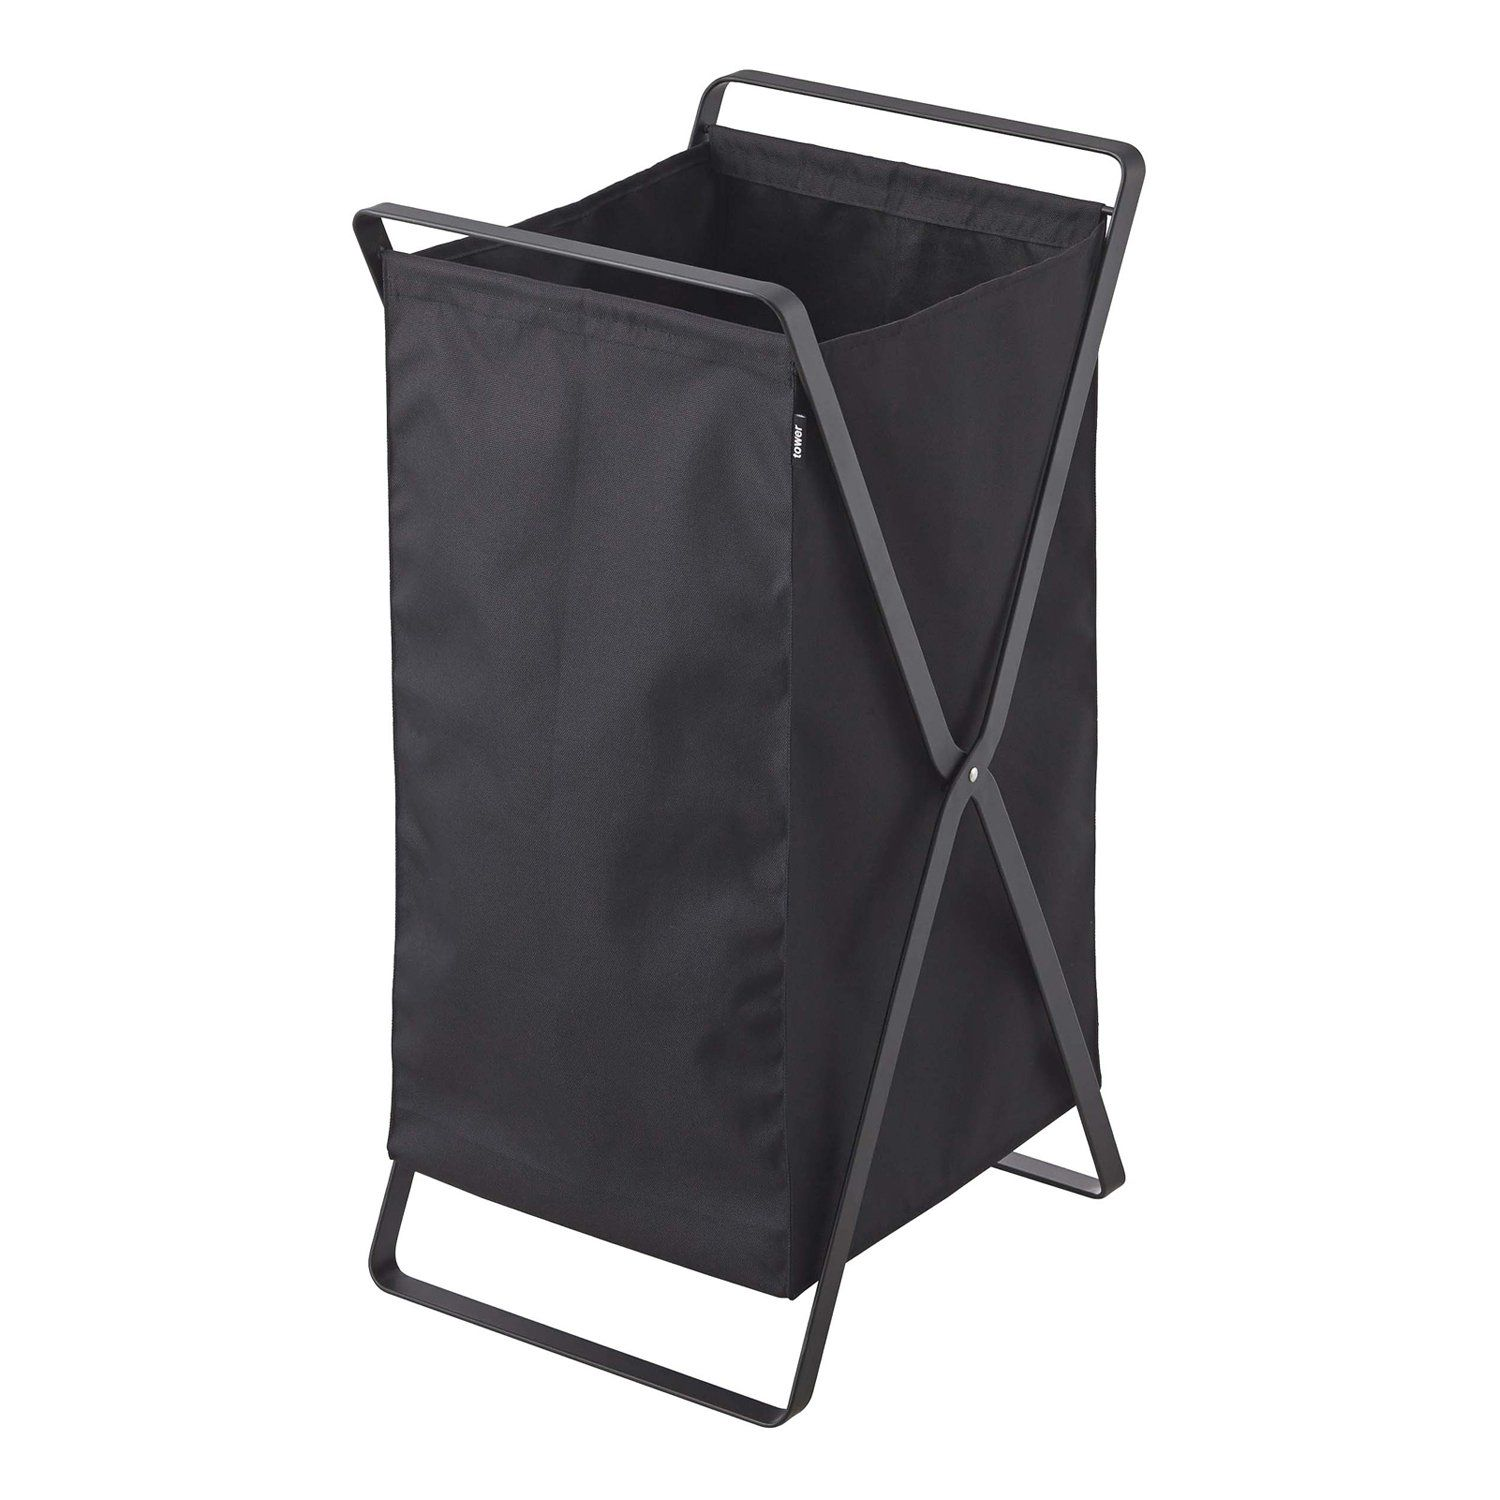 Clothes baskets don't have to take up loads of space. This laundry hamper is lightweight, durable and collapsible. The hamper holds plenty of clothes and folds up for easy-carrying once it's time to do the wash. Perfect for carrying from the laundry room to the bedroom and back again. Ideal for dorm rooms and apartments tight on space.Dimensions + DetailsMaterials: Steel, PolyesterDimensions: L 14.2 x W 11.8 x H 25.2 inchesProduct Weight: 4.9 lbs.Load-bearing weight: 11 lbs.Designed in JapanManu